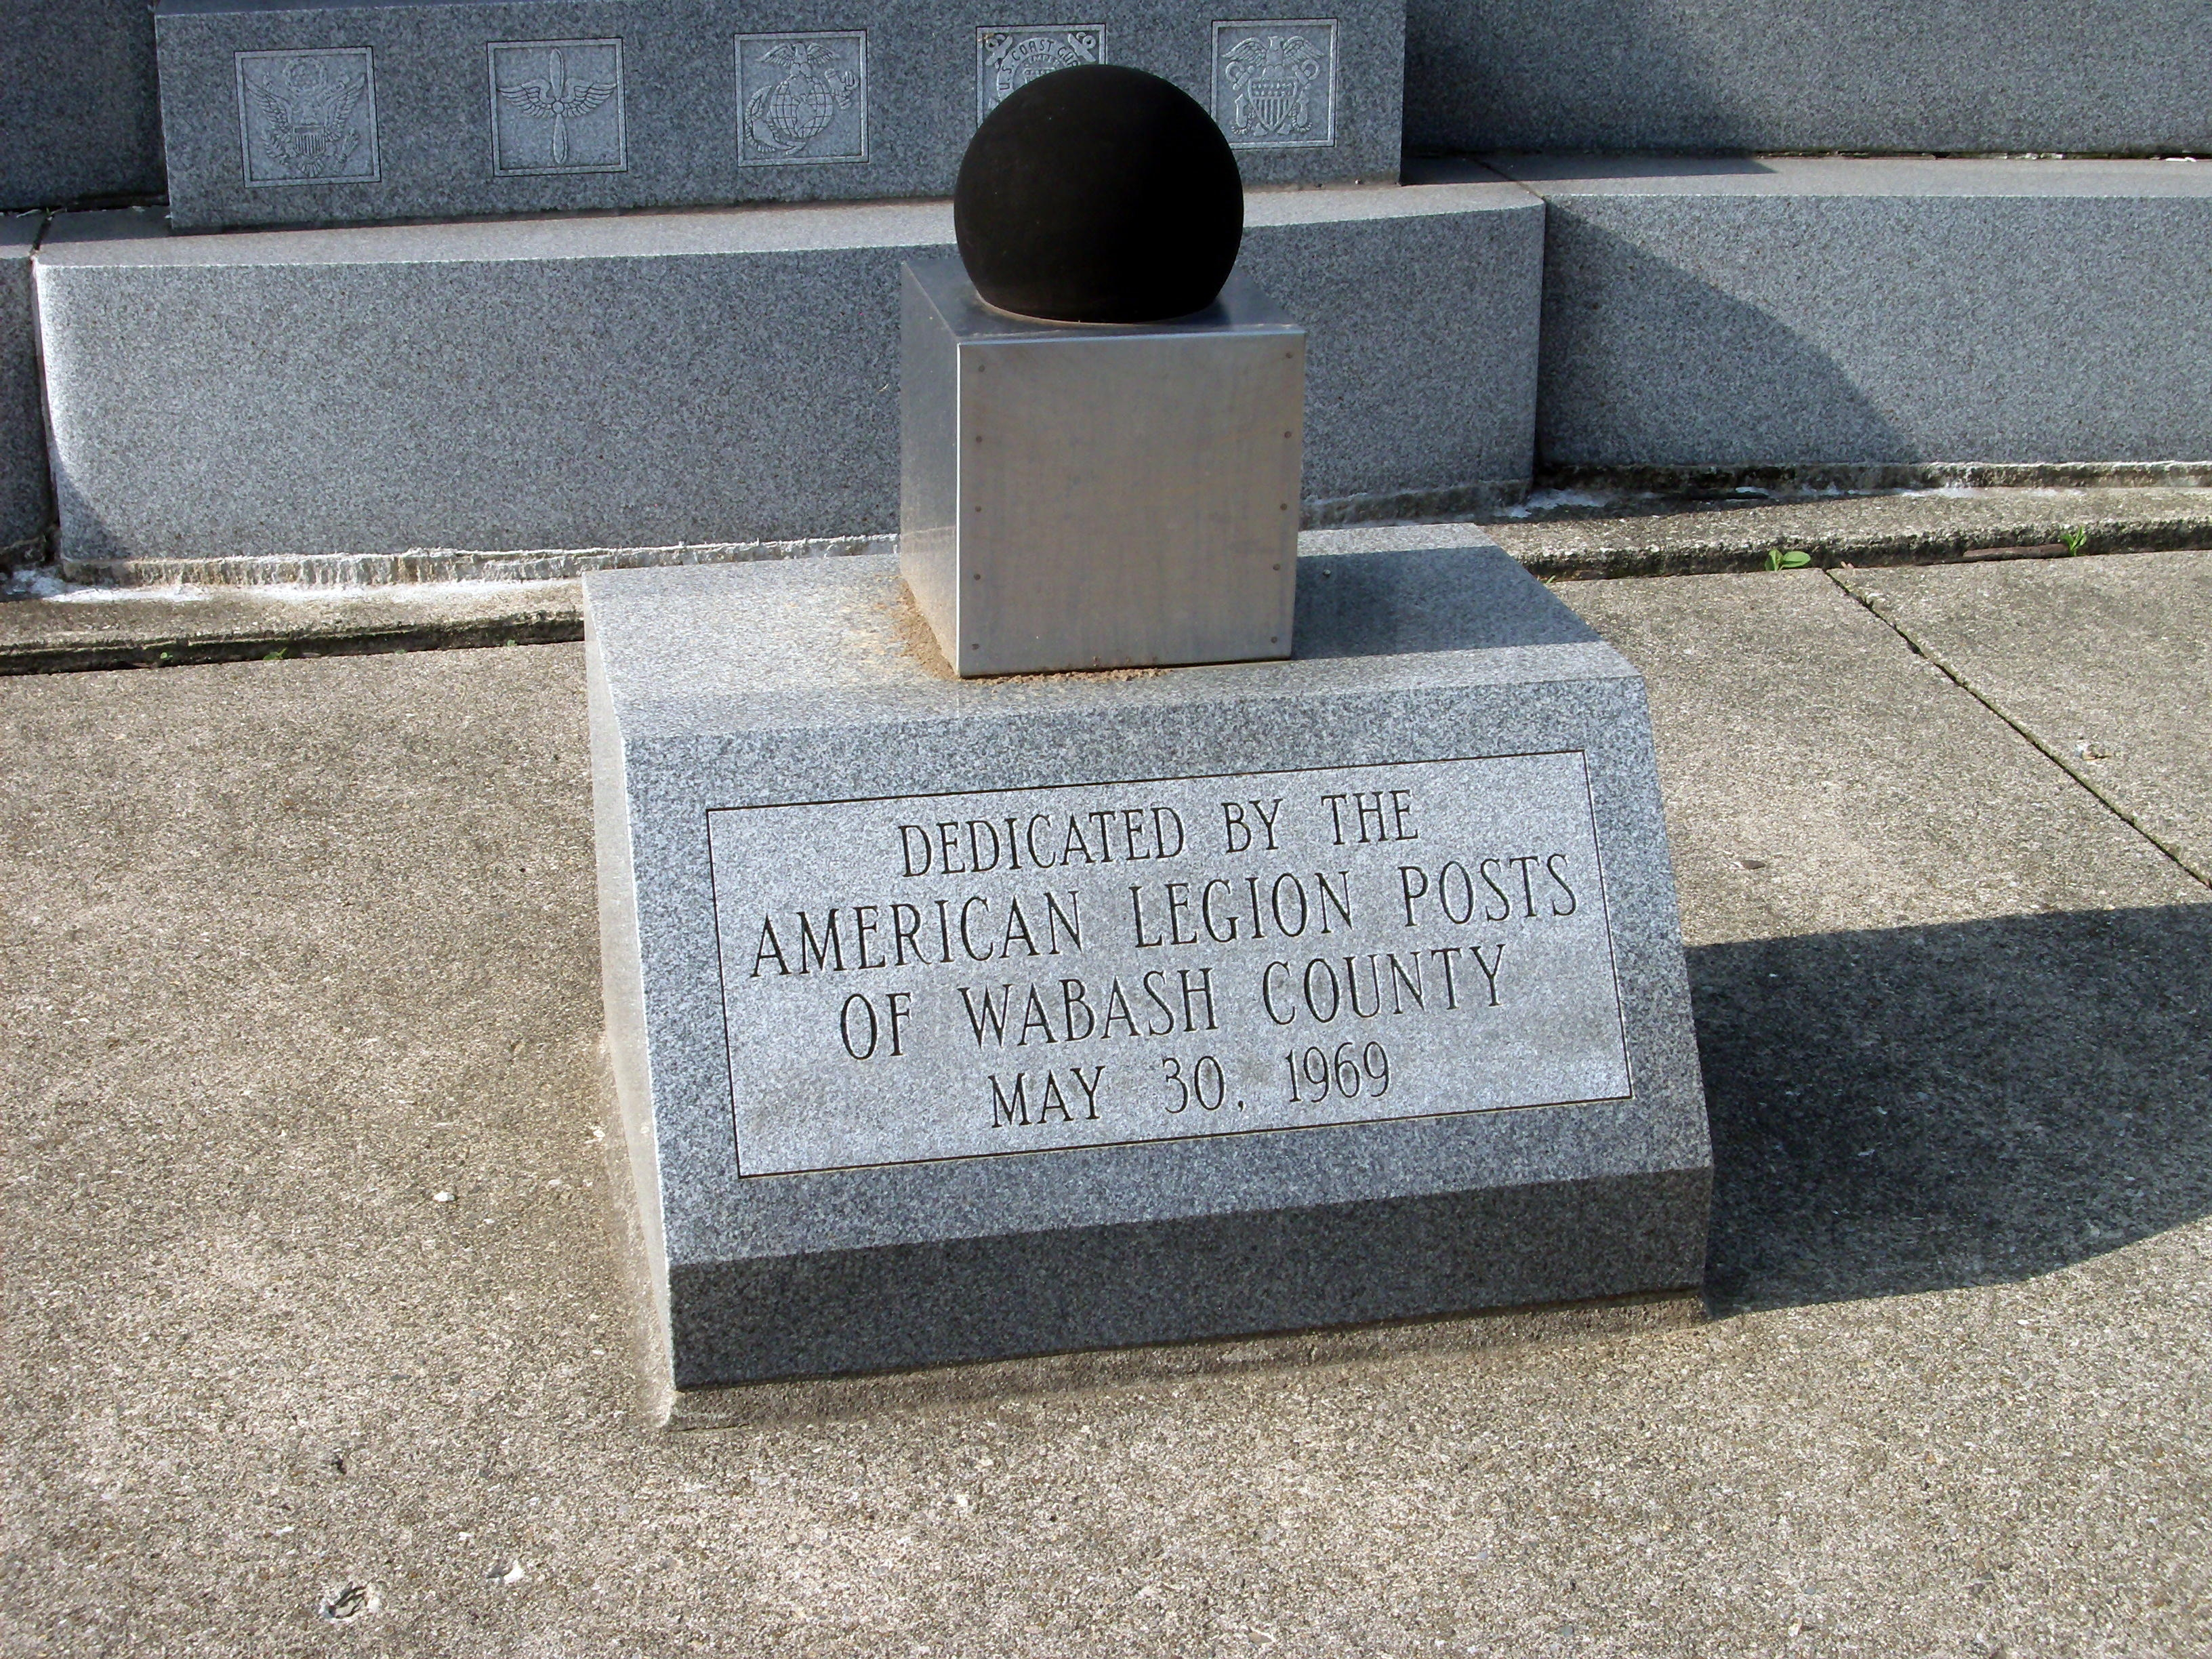 Dedication by Wabash County - - American Legion Posts